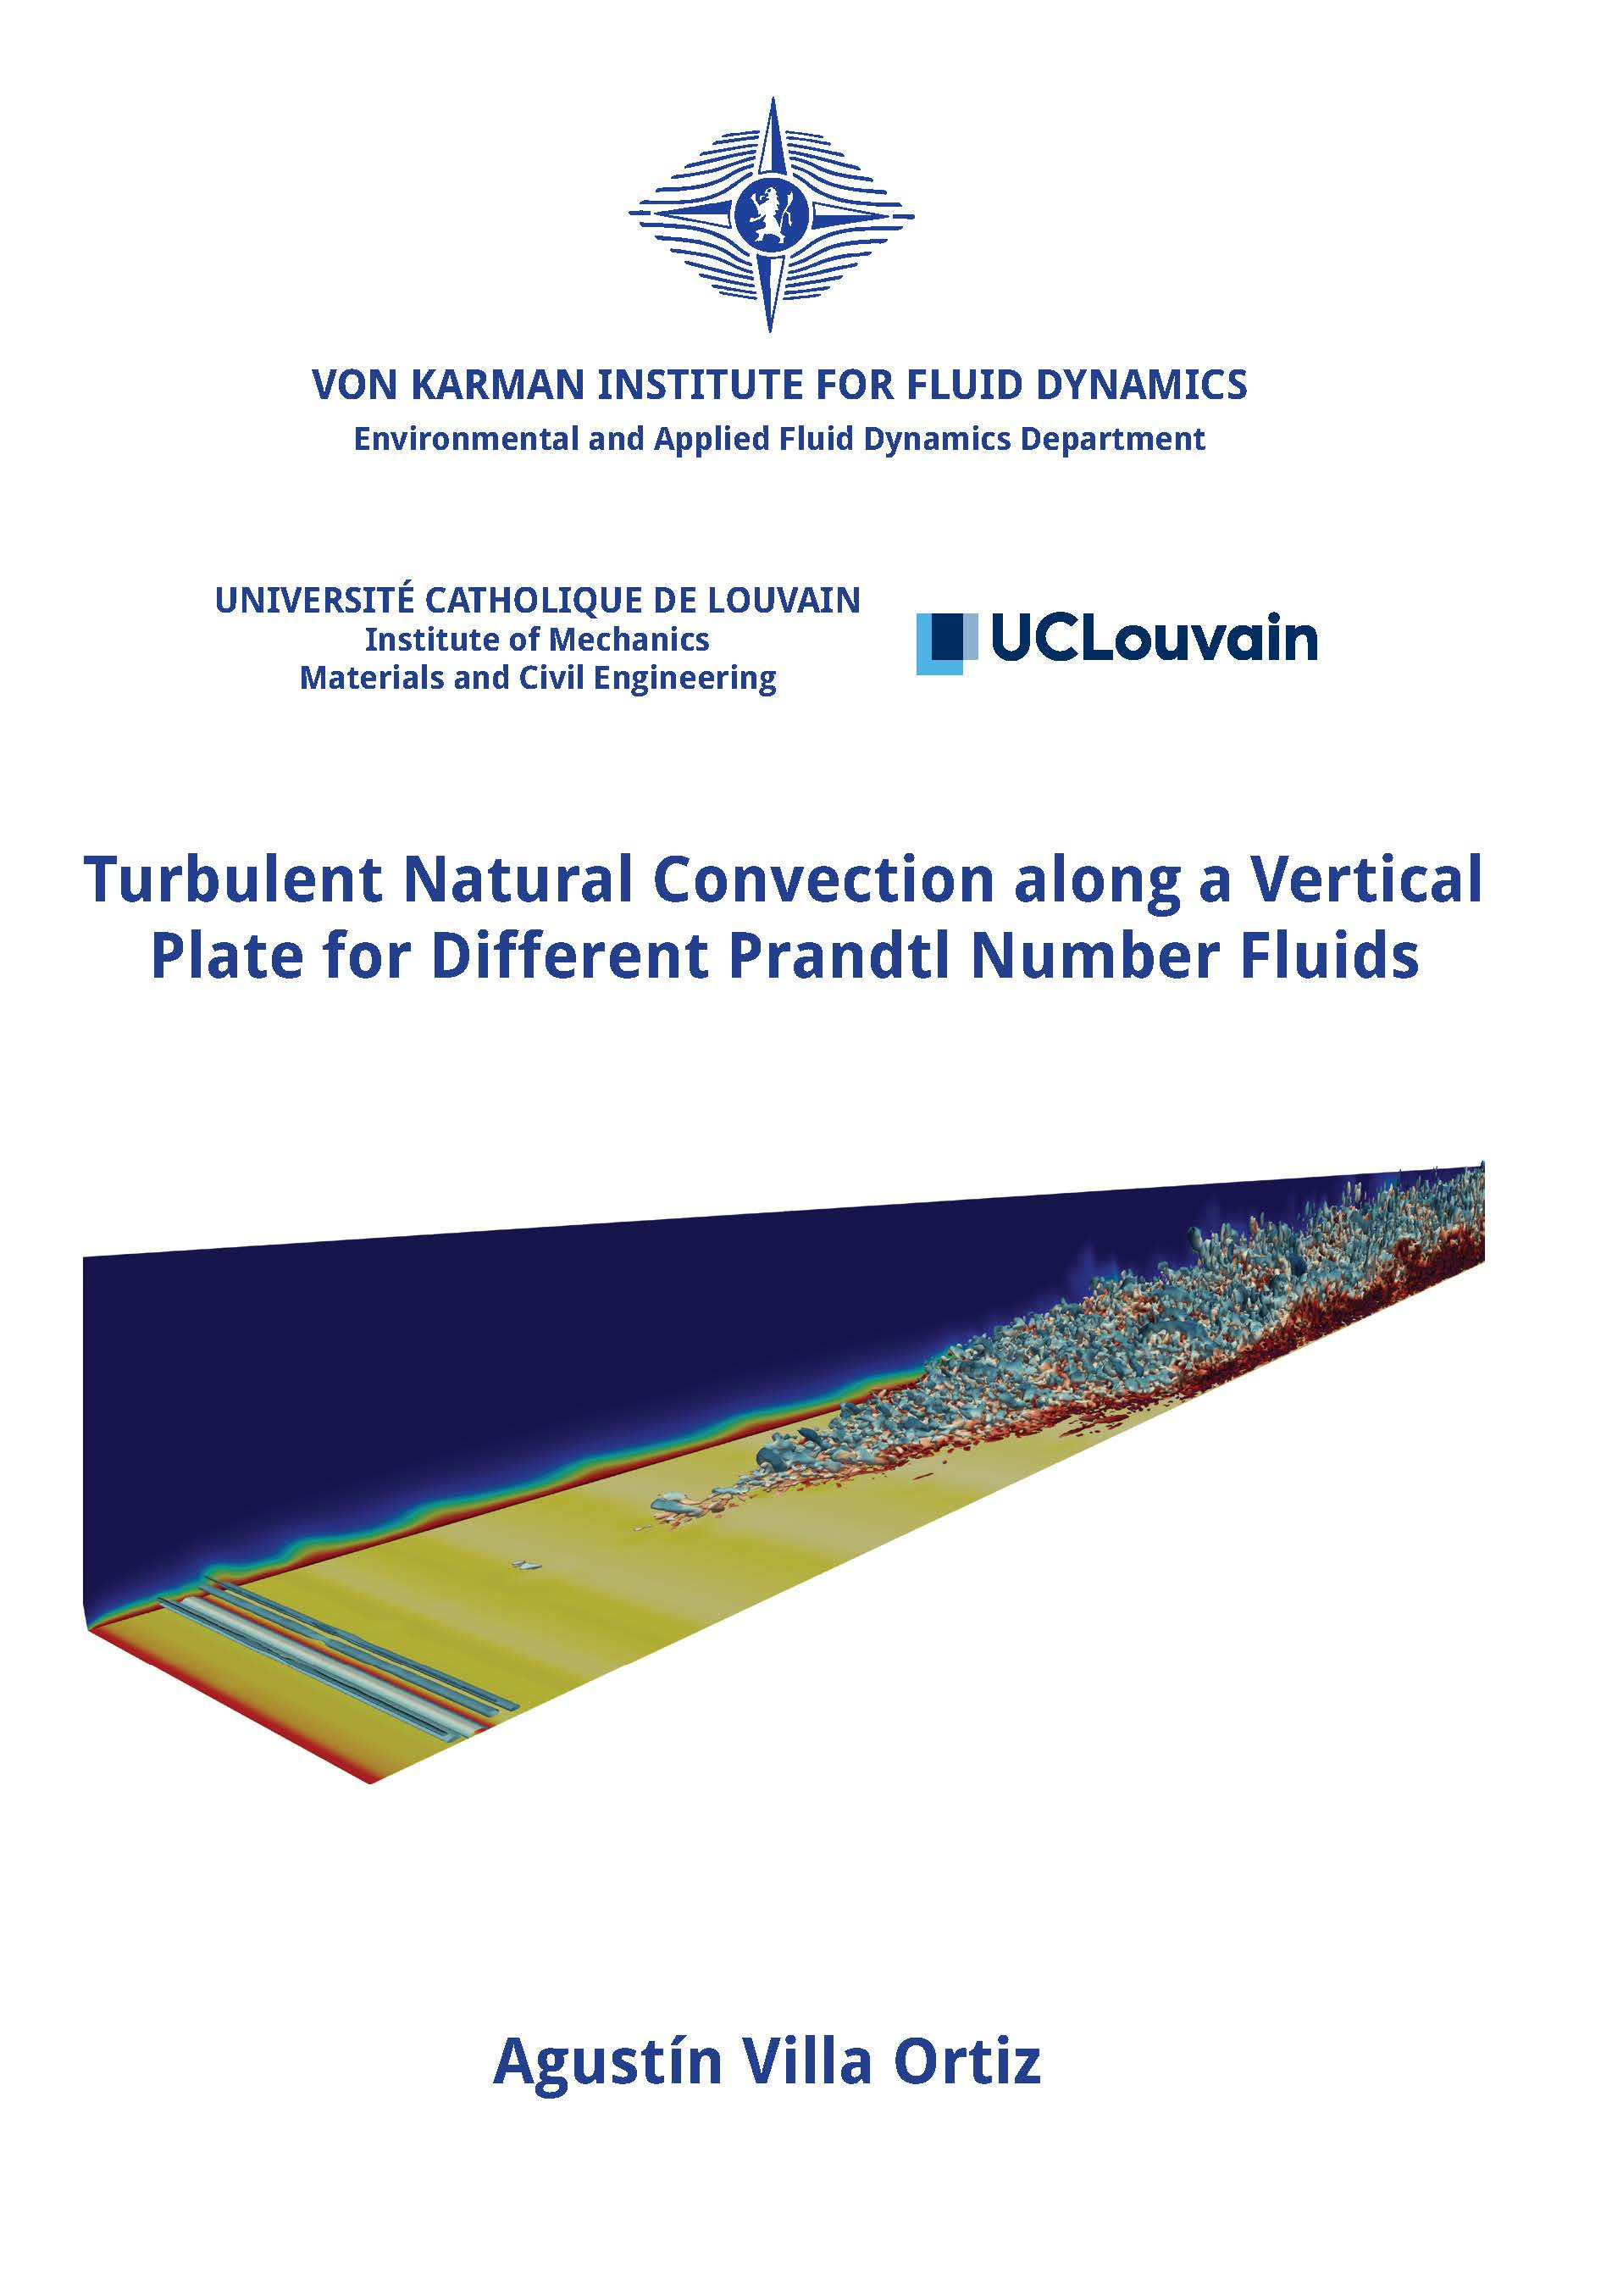 Turbulent natural convection along a vertical plate for different Prandtl number fluids  - Agustín Villa Ortiz - Ph.D. Thesis - Free download